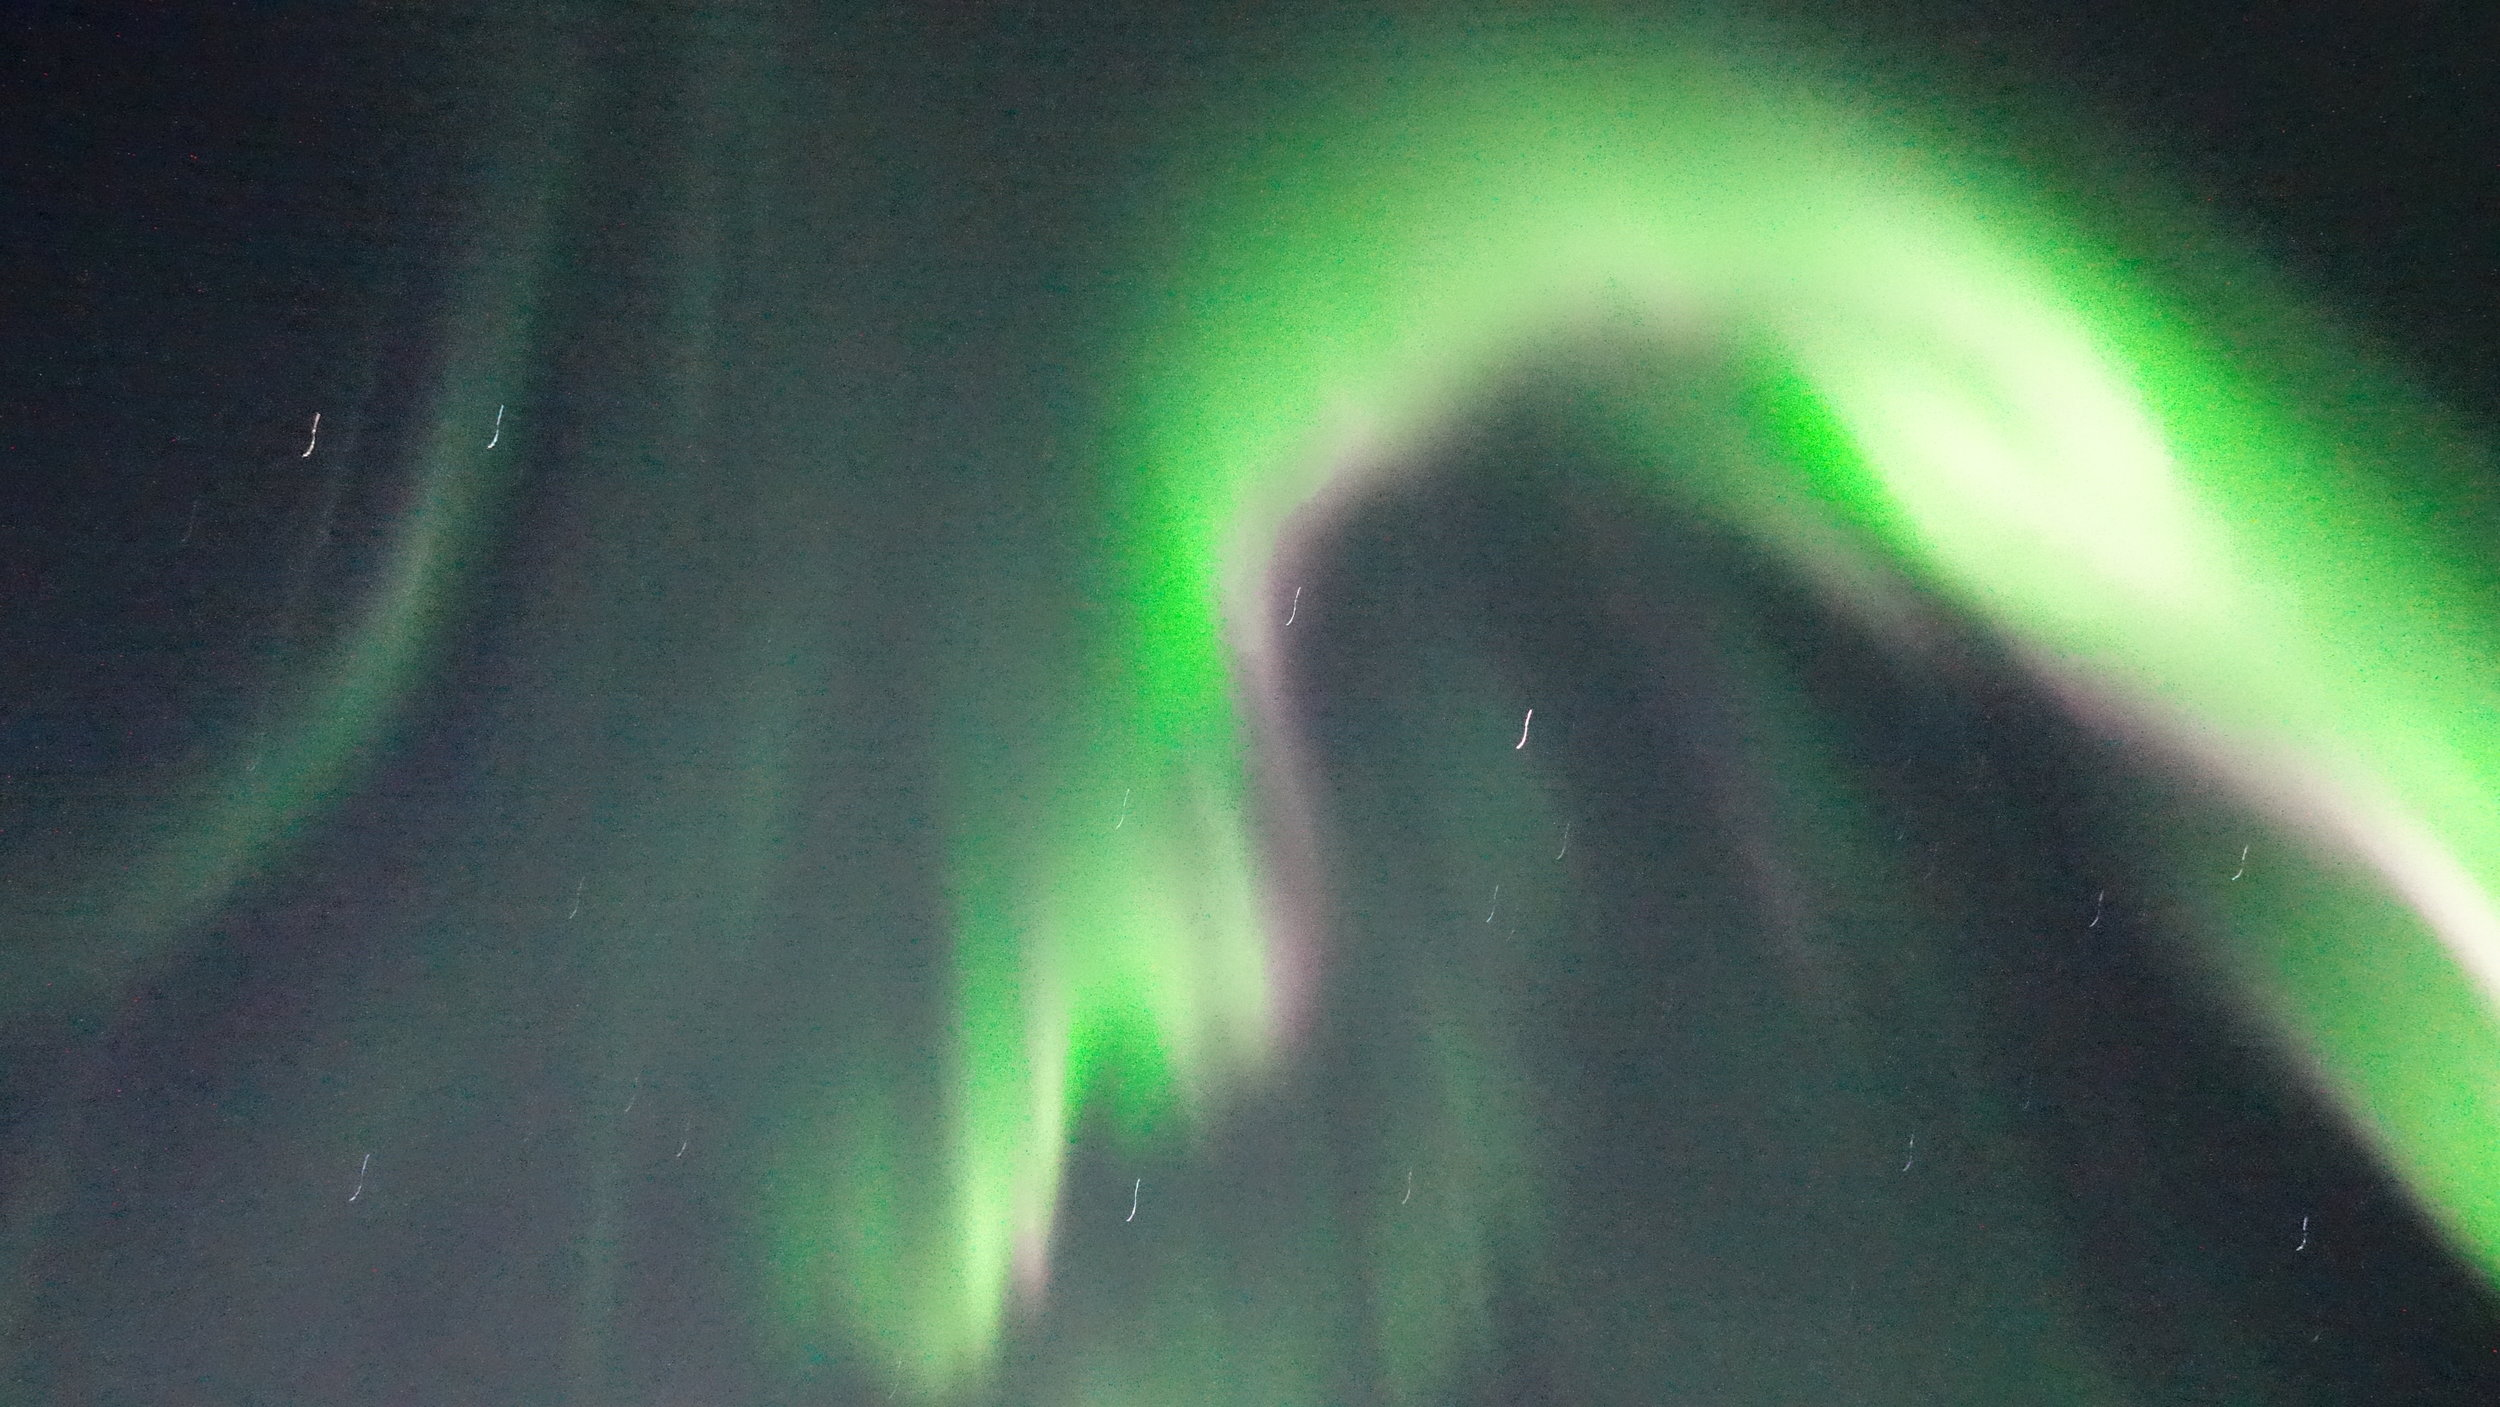 The Aurora Borealis is spectacular, constantly changing and lighting up the night sky.